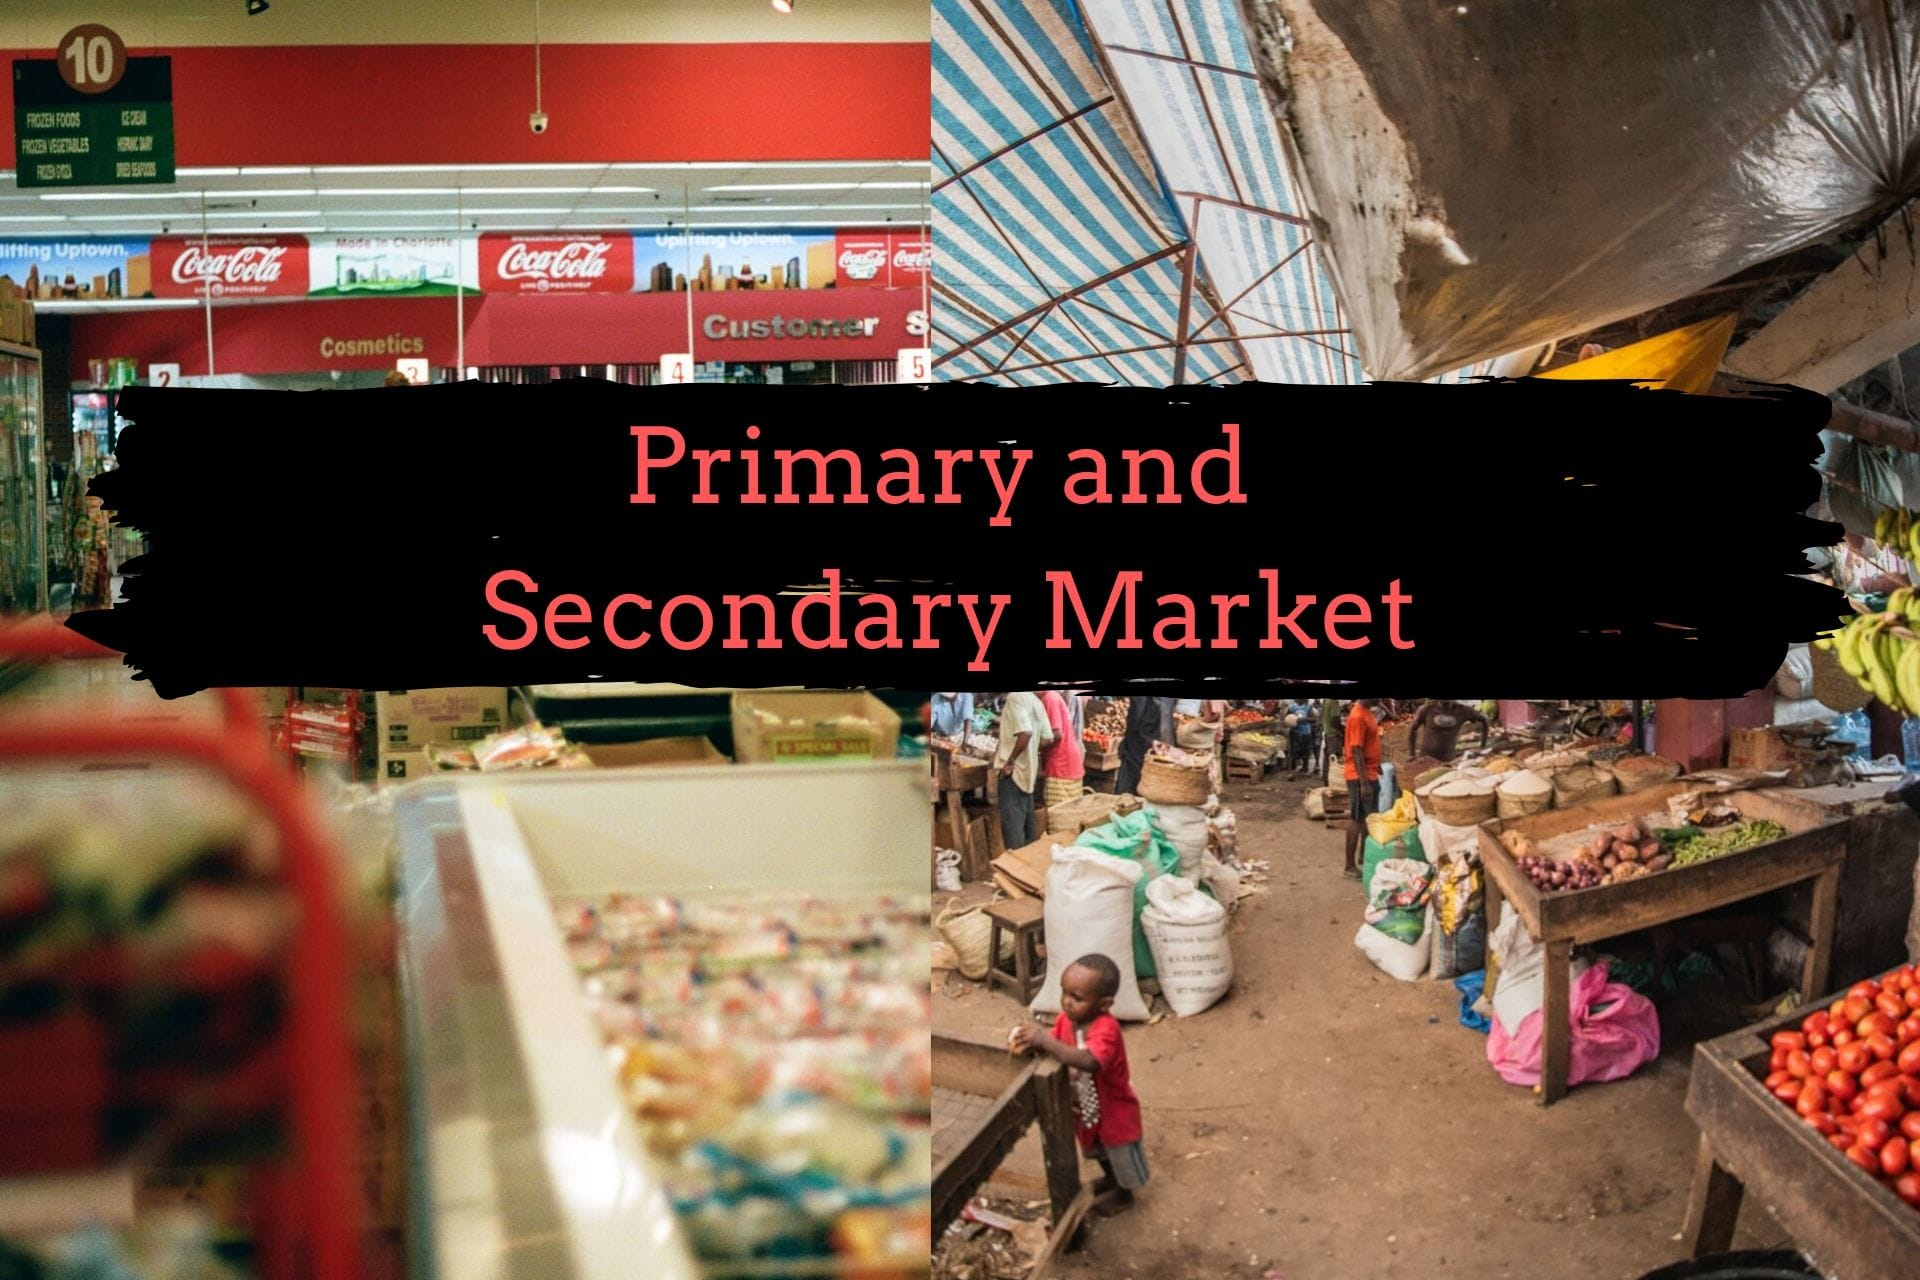 Primary and Secondary market